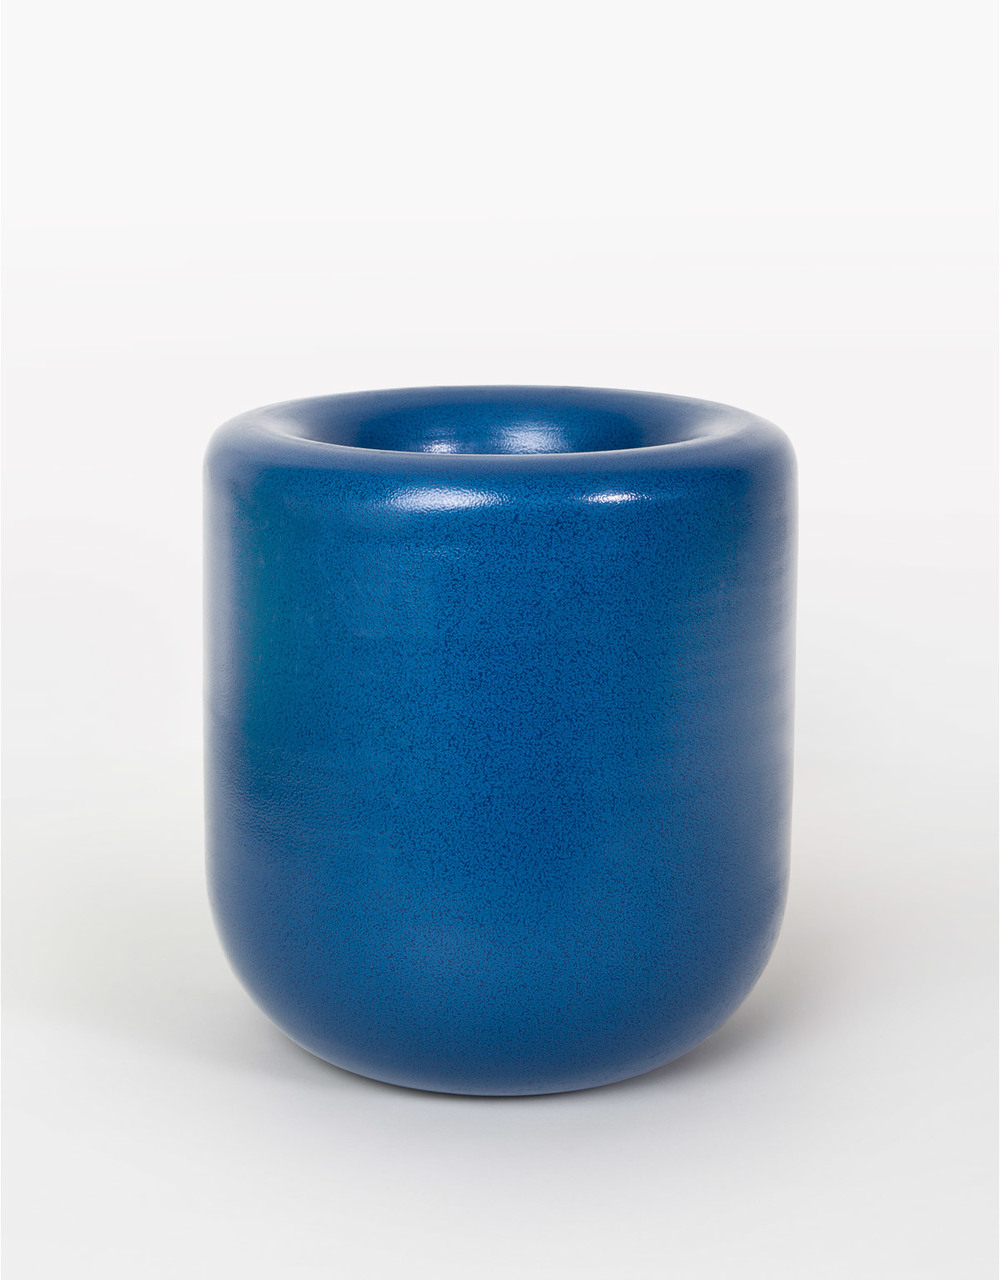 brookandlyn_planter_18_blue_1.jpg